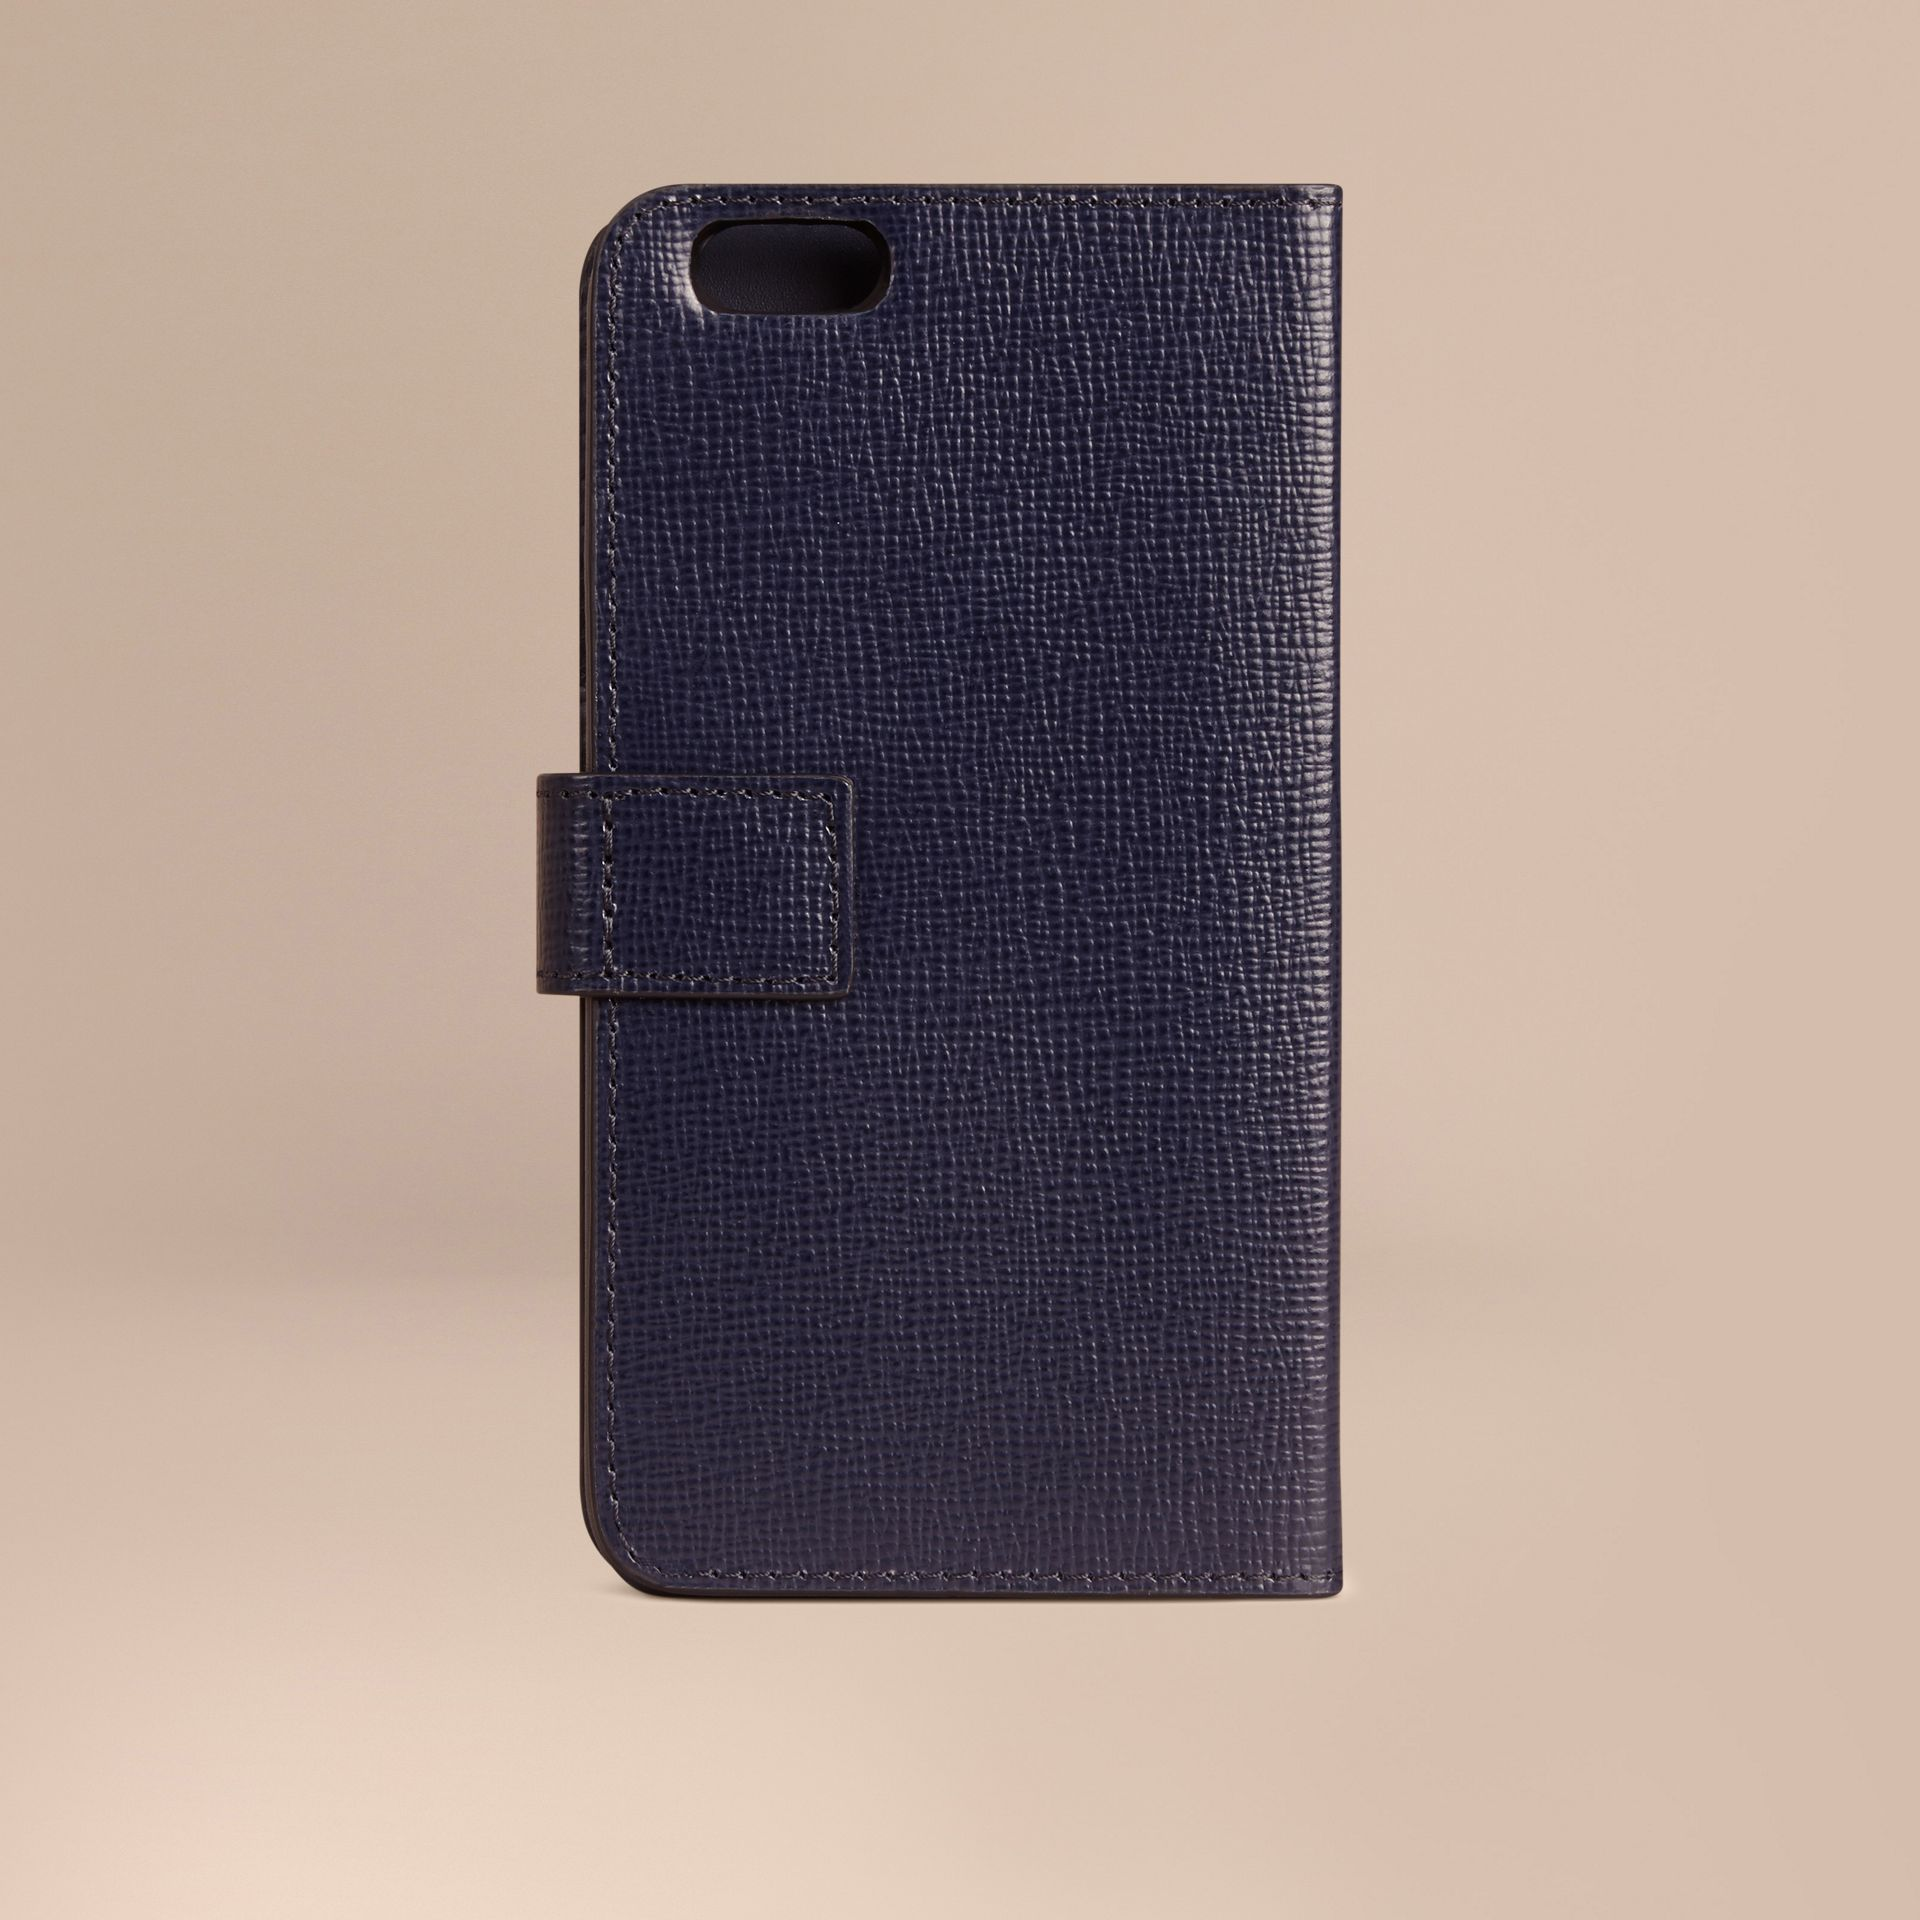 Navy scuro Custodia a libro in pelle London per iPhone 6 Navy Scuro - immagine della galleria 3